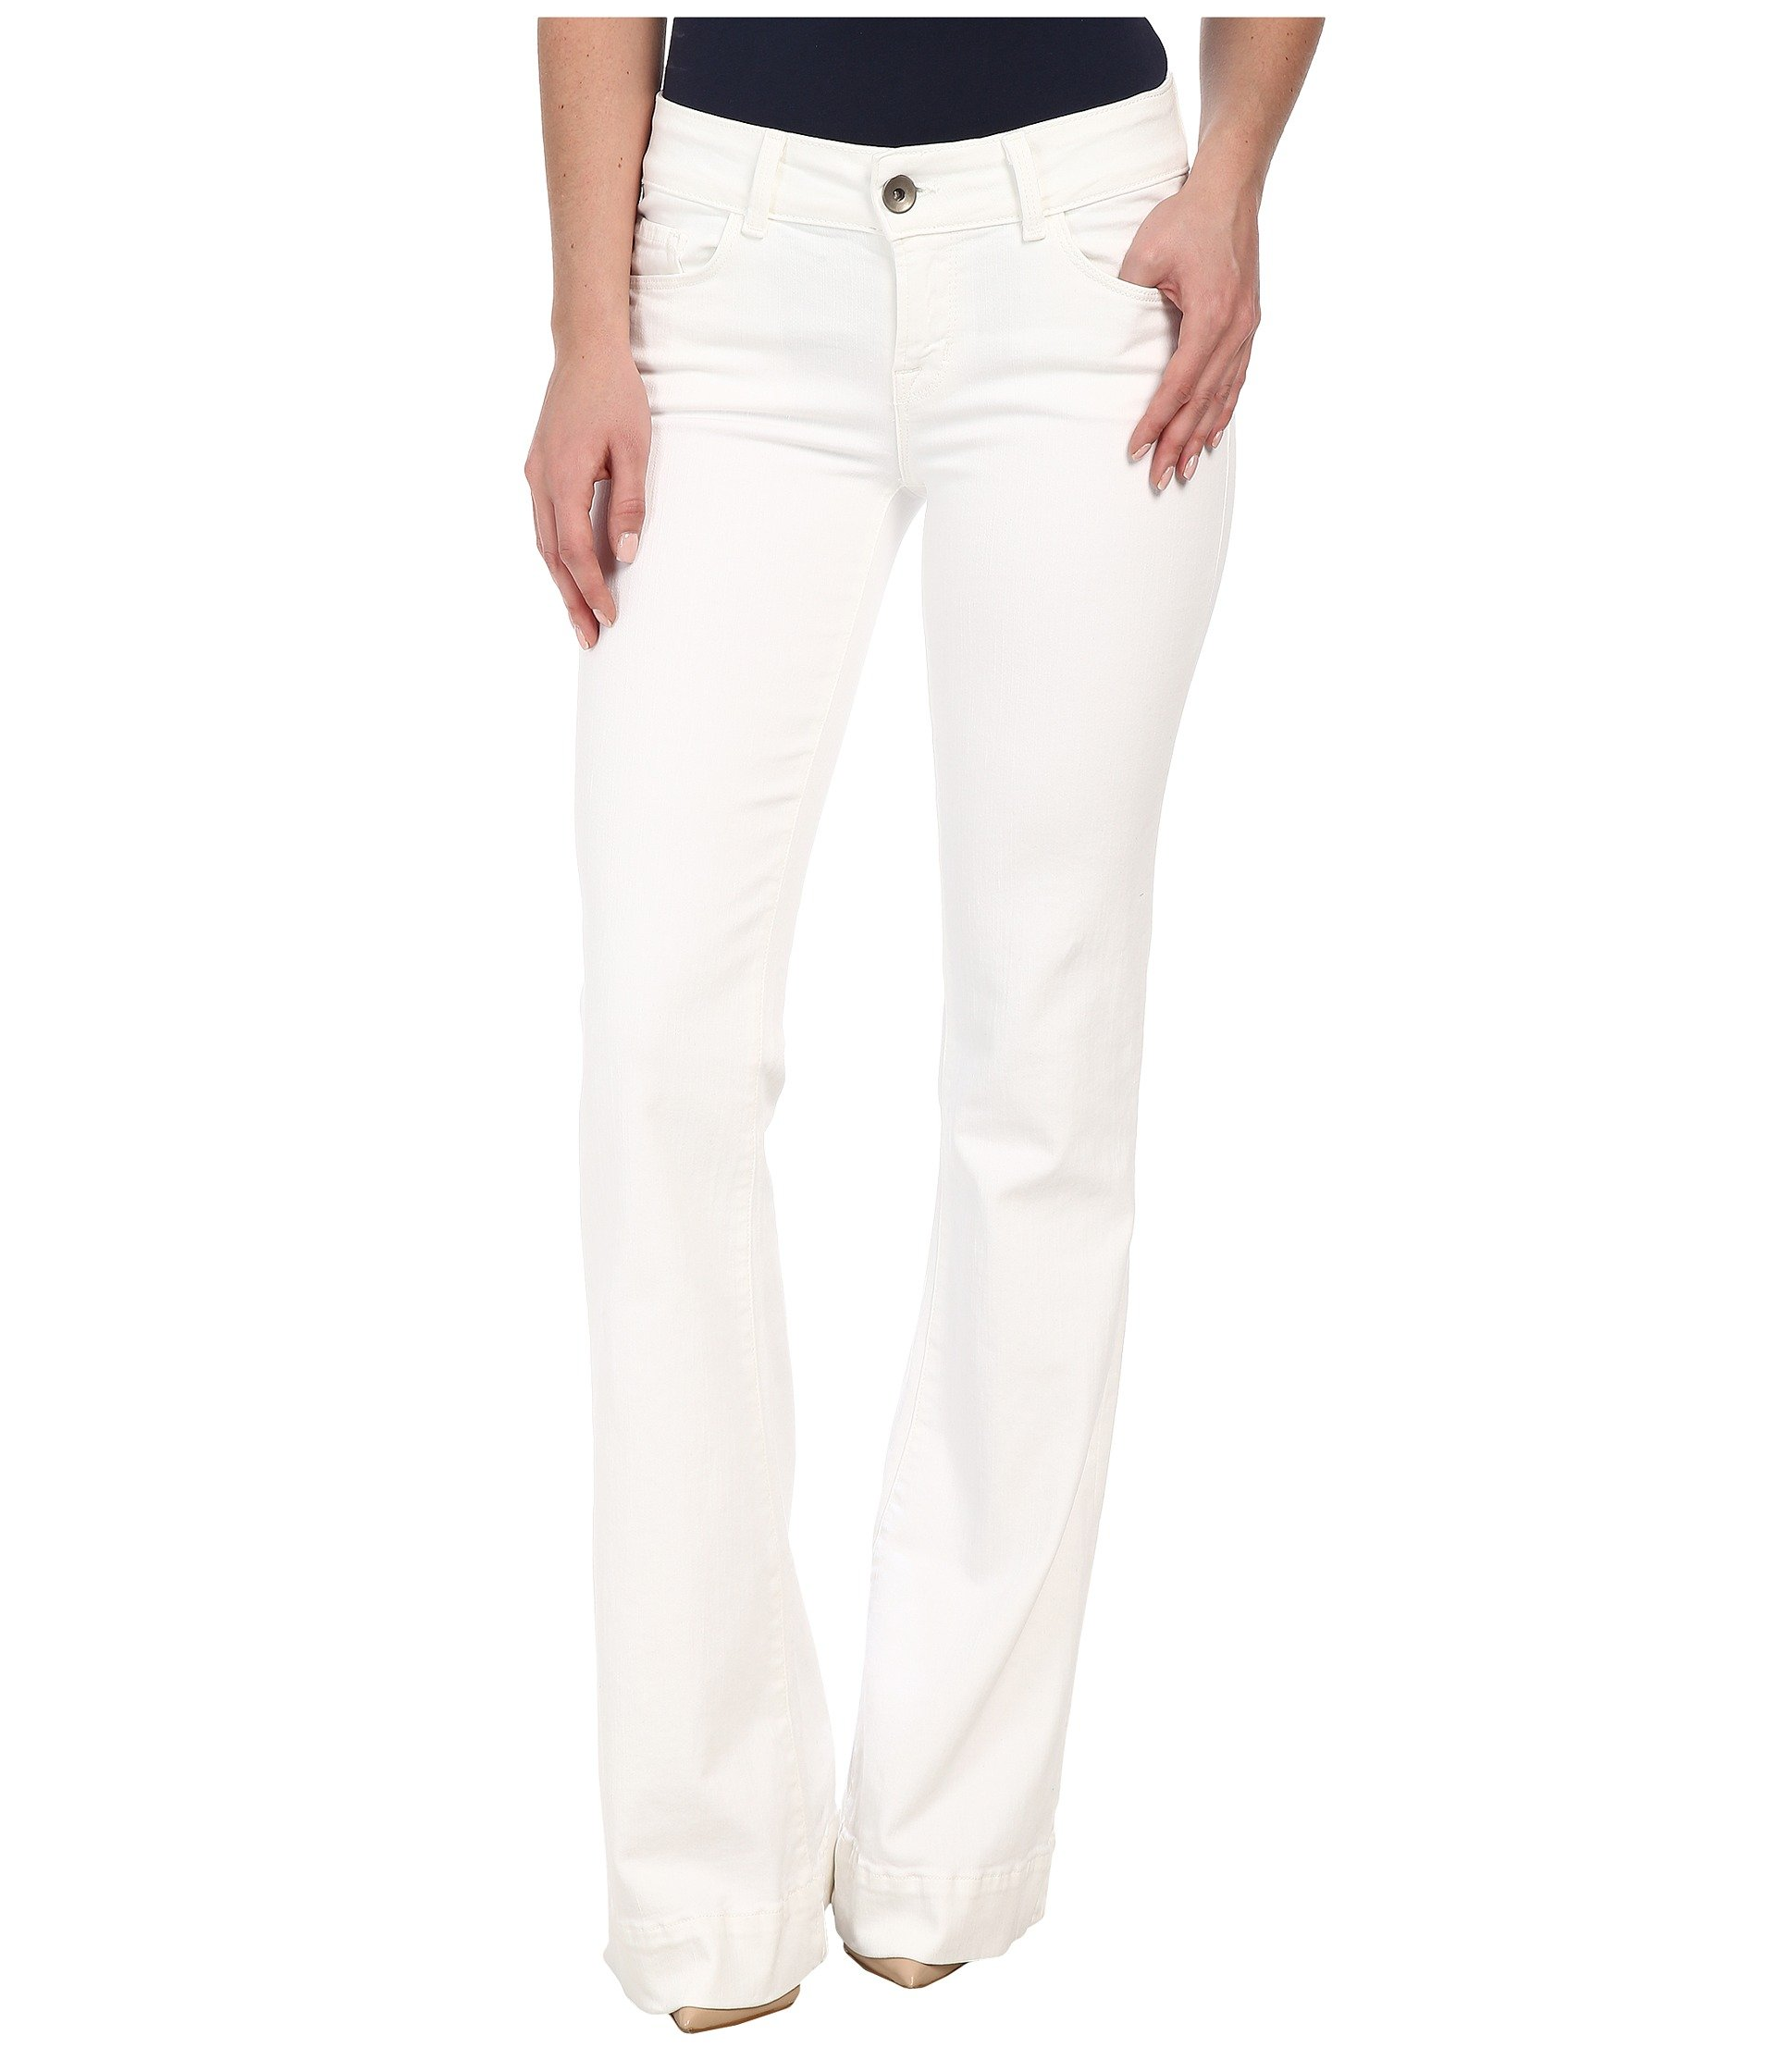 J Brand Women's Love Story Flare Jeans, Blanc, 27